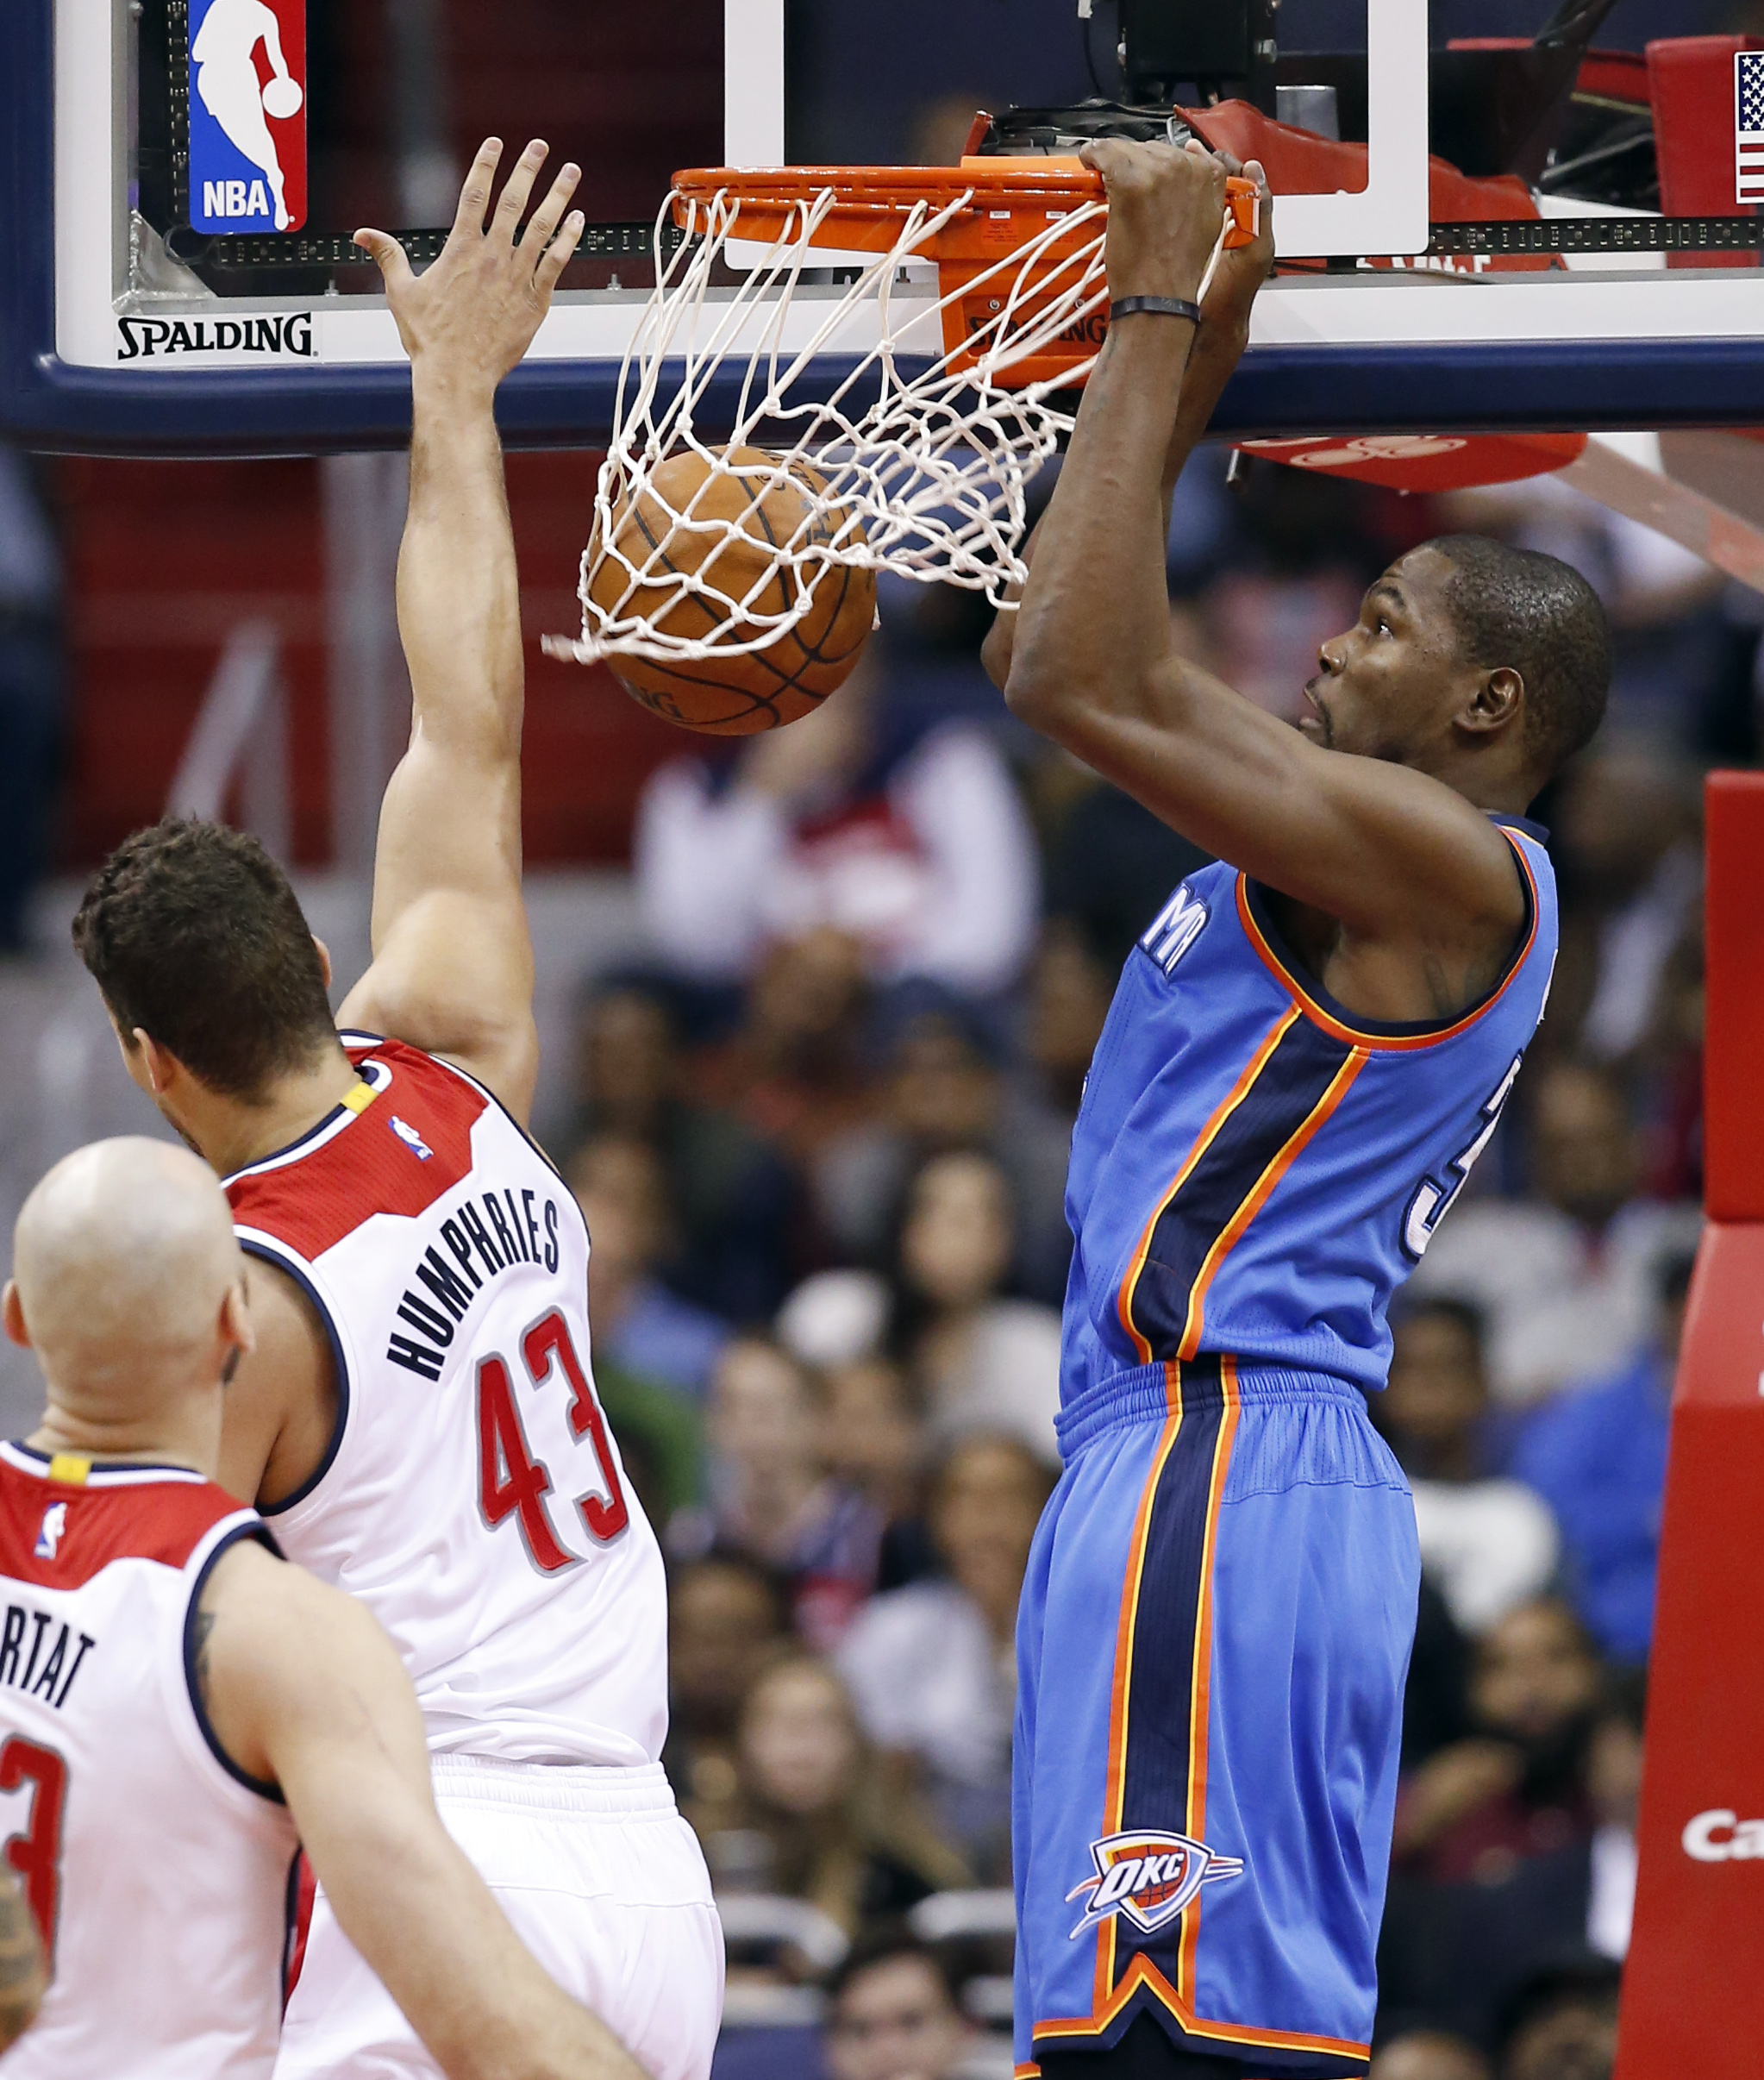 Oklahoma City Thunder forward Kevin Durant (35) dunks in front of Washington Wizards forward Kris Humphries (43) during the first half of an NBA basketball game, Tuesday, Nov. 10, 2015, in Washington. (AP Photo/Alex Brandon)